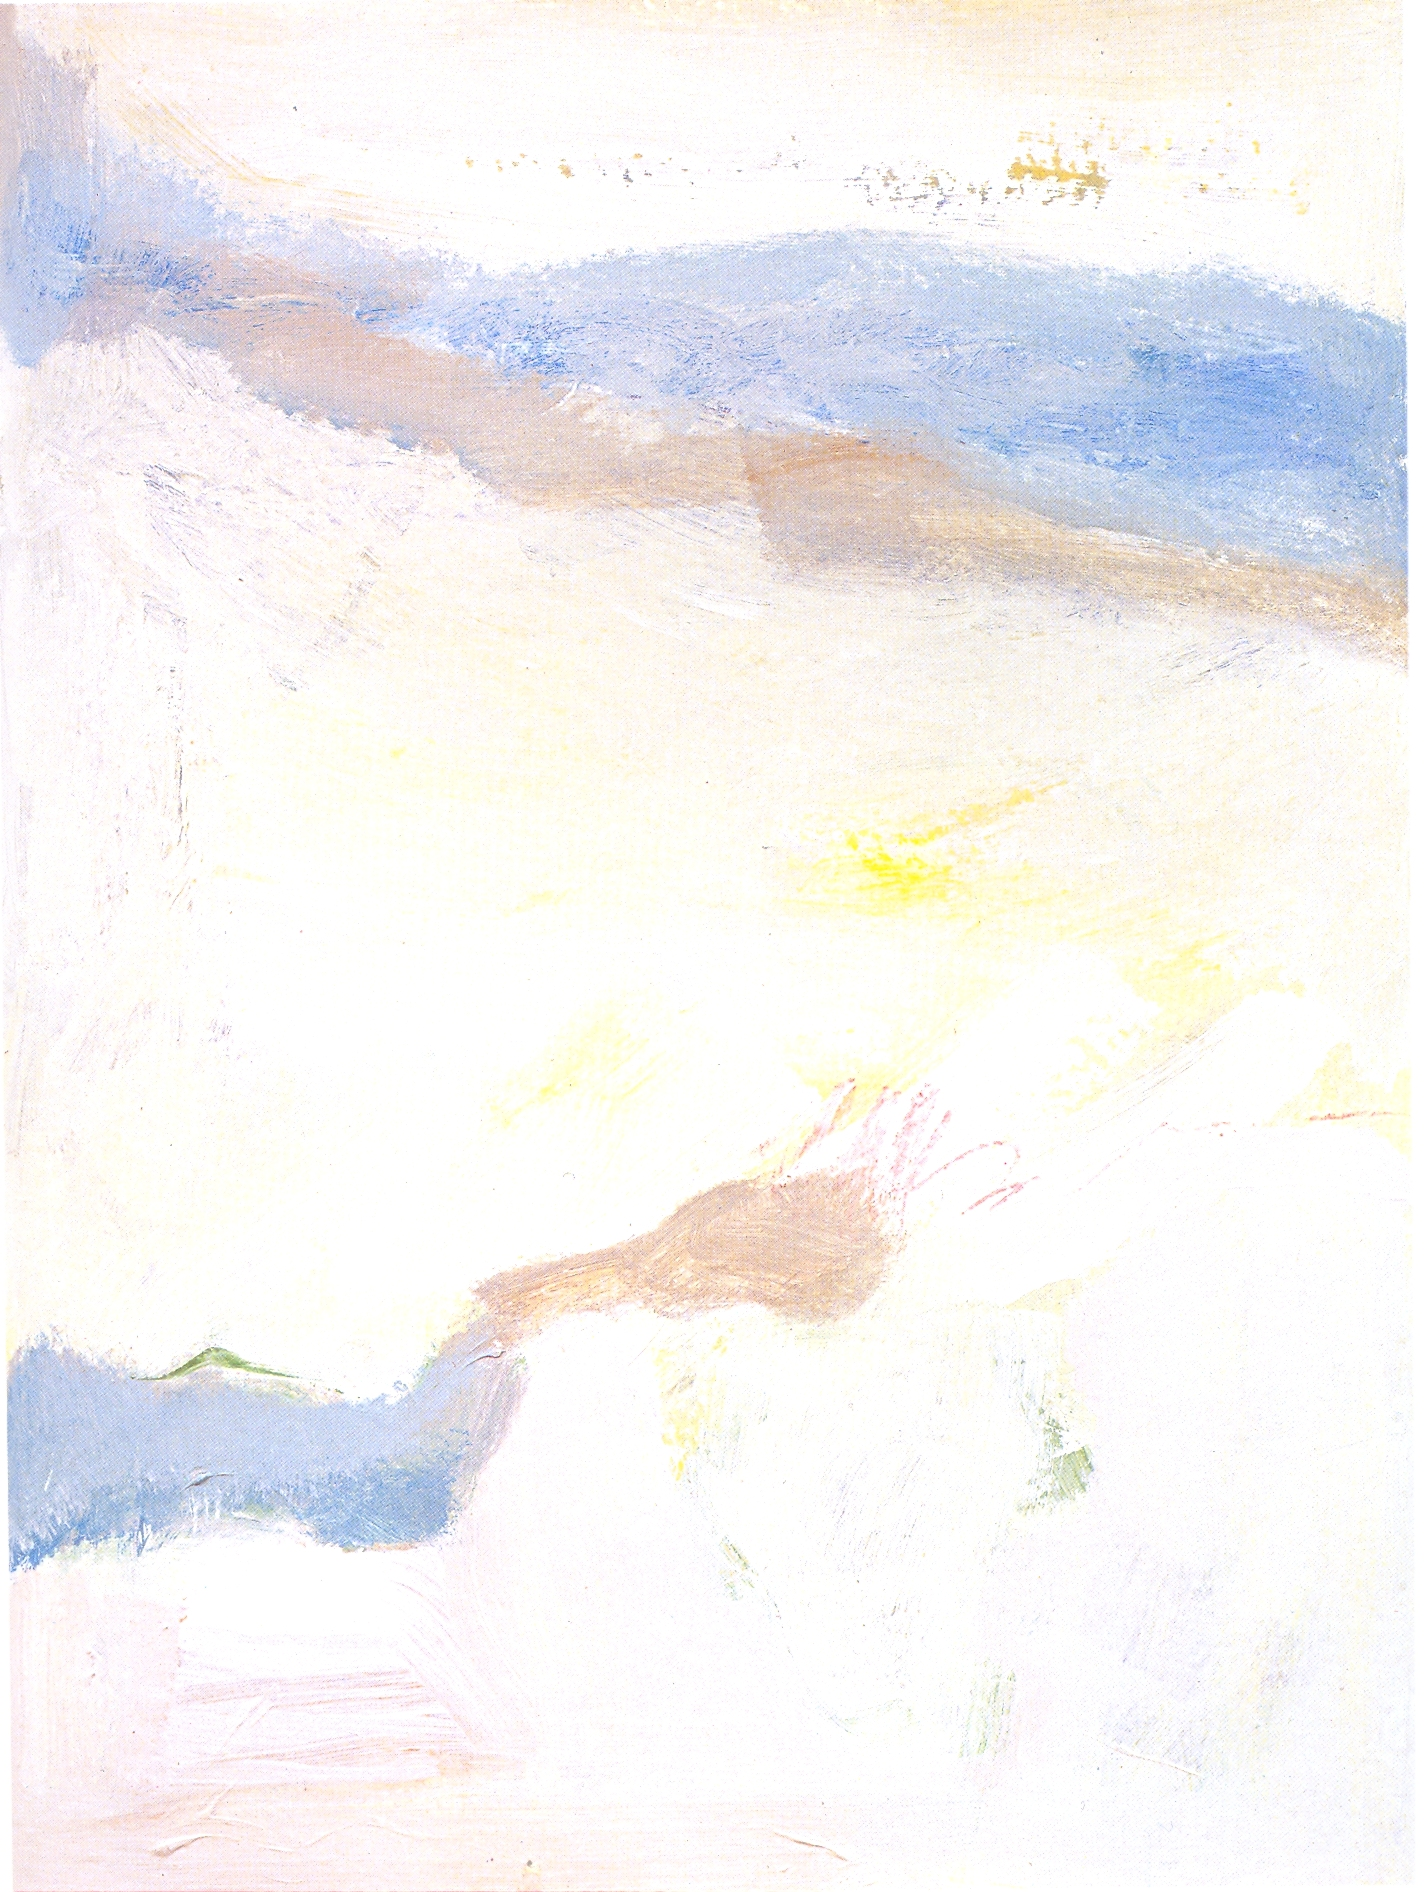 """California Dreaming,   2002, Acrylic on paper, 30 1/4"""" x 22 1/4"""""""